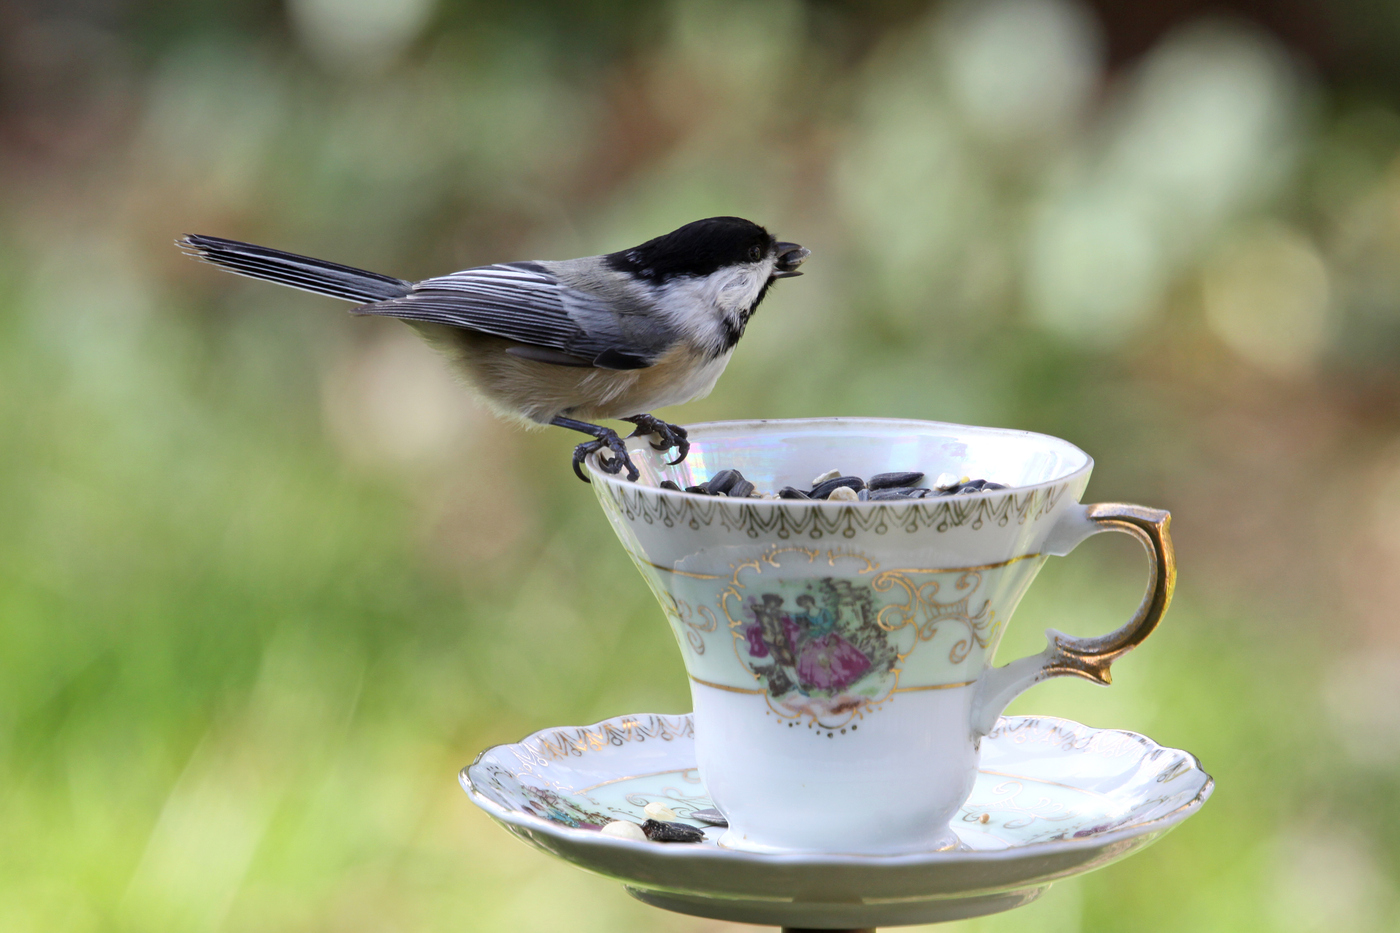 Chickadee at Teacup #17